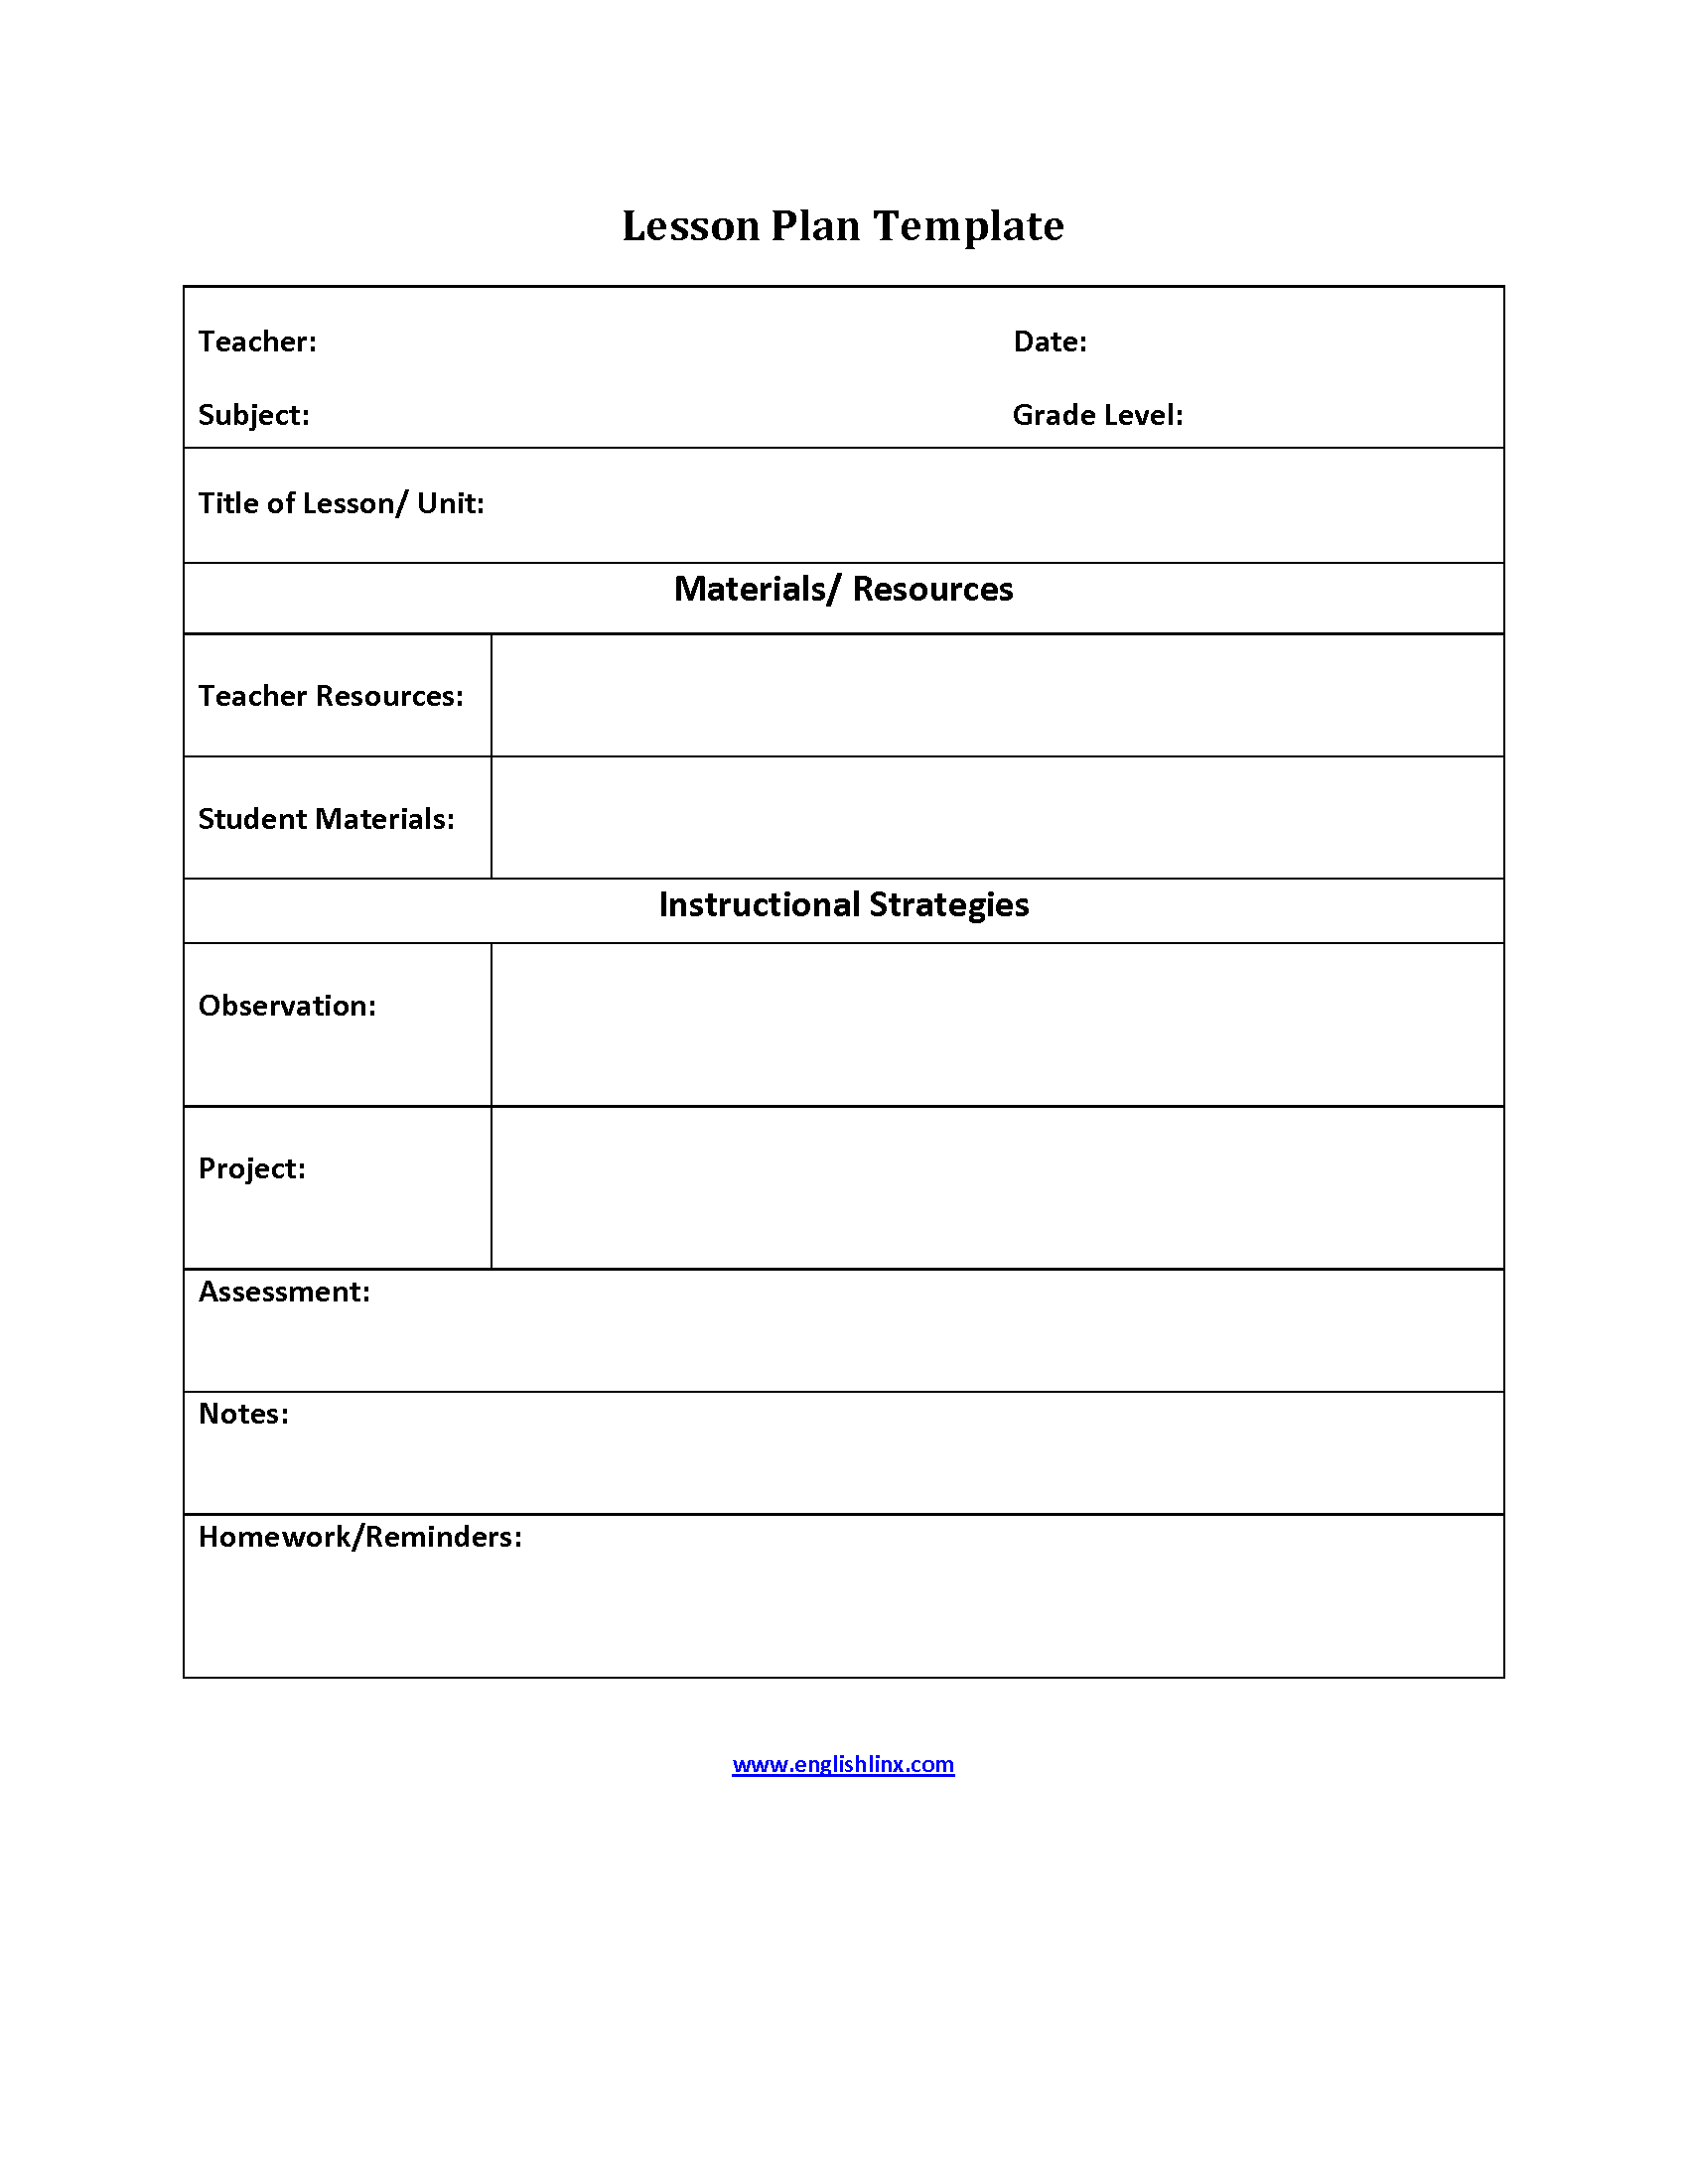 Lesson Plan Template Simple Lesson Plan Template - Lesson plan observation template